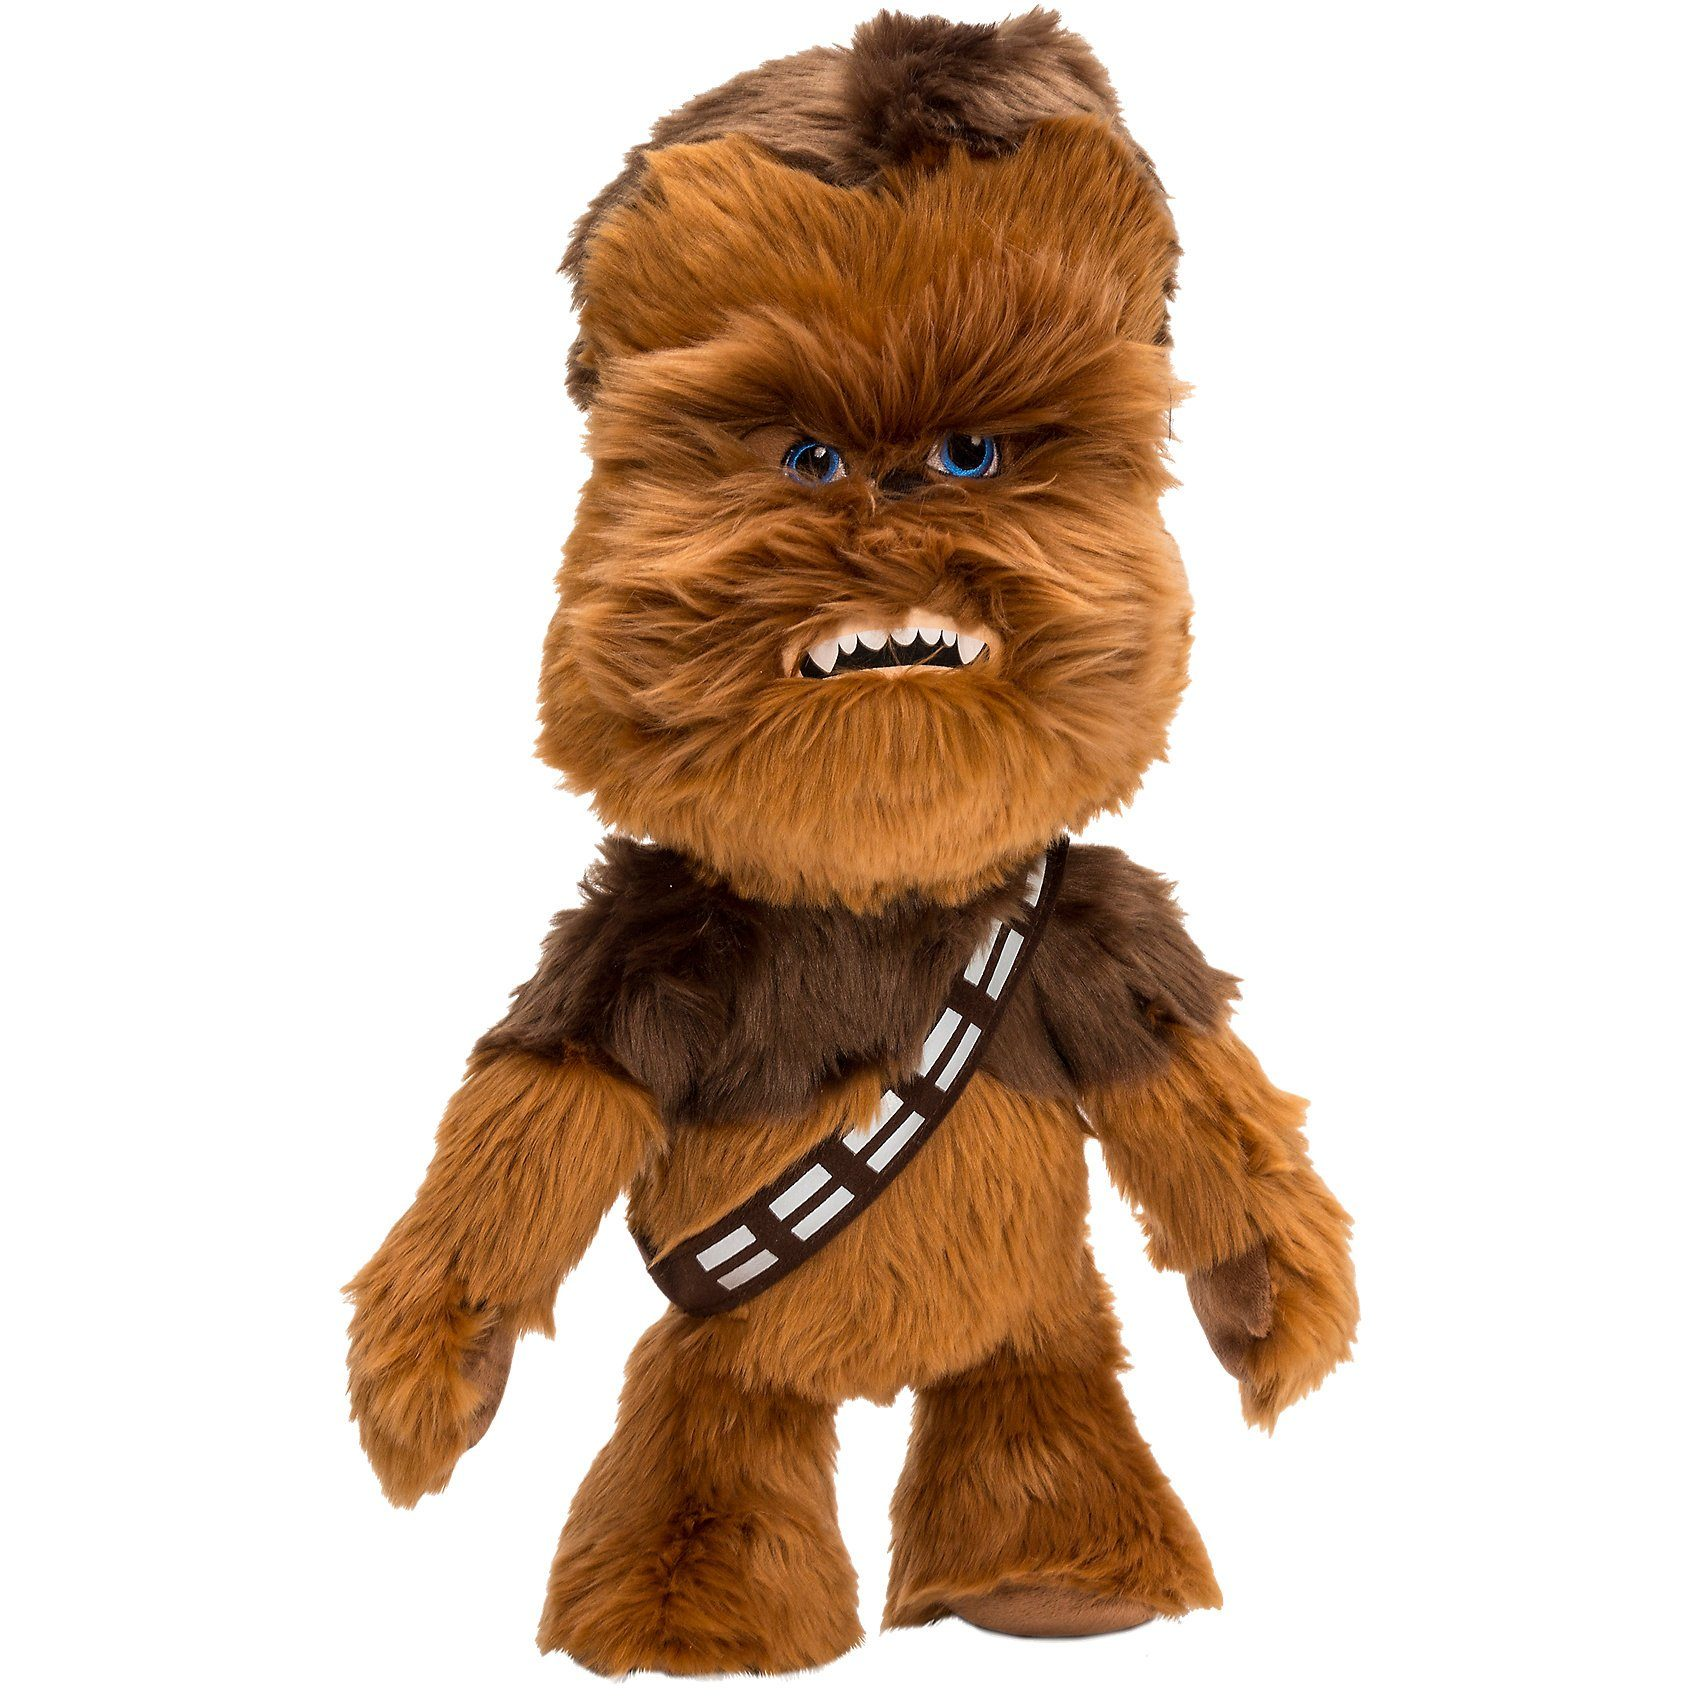 JOY TOY Velboa-Samtplüsch Chewbacca Star Wars, 45 cm